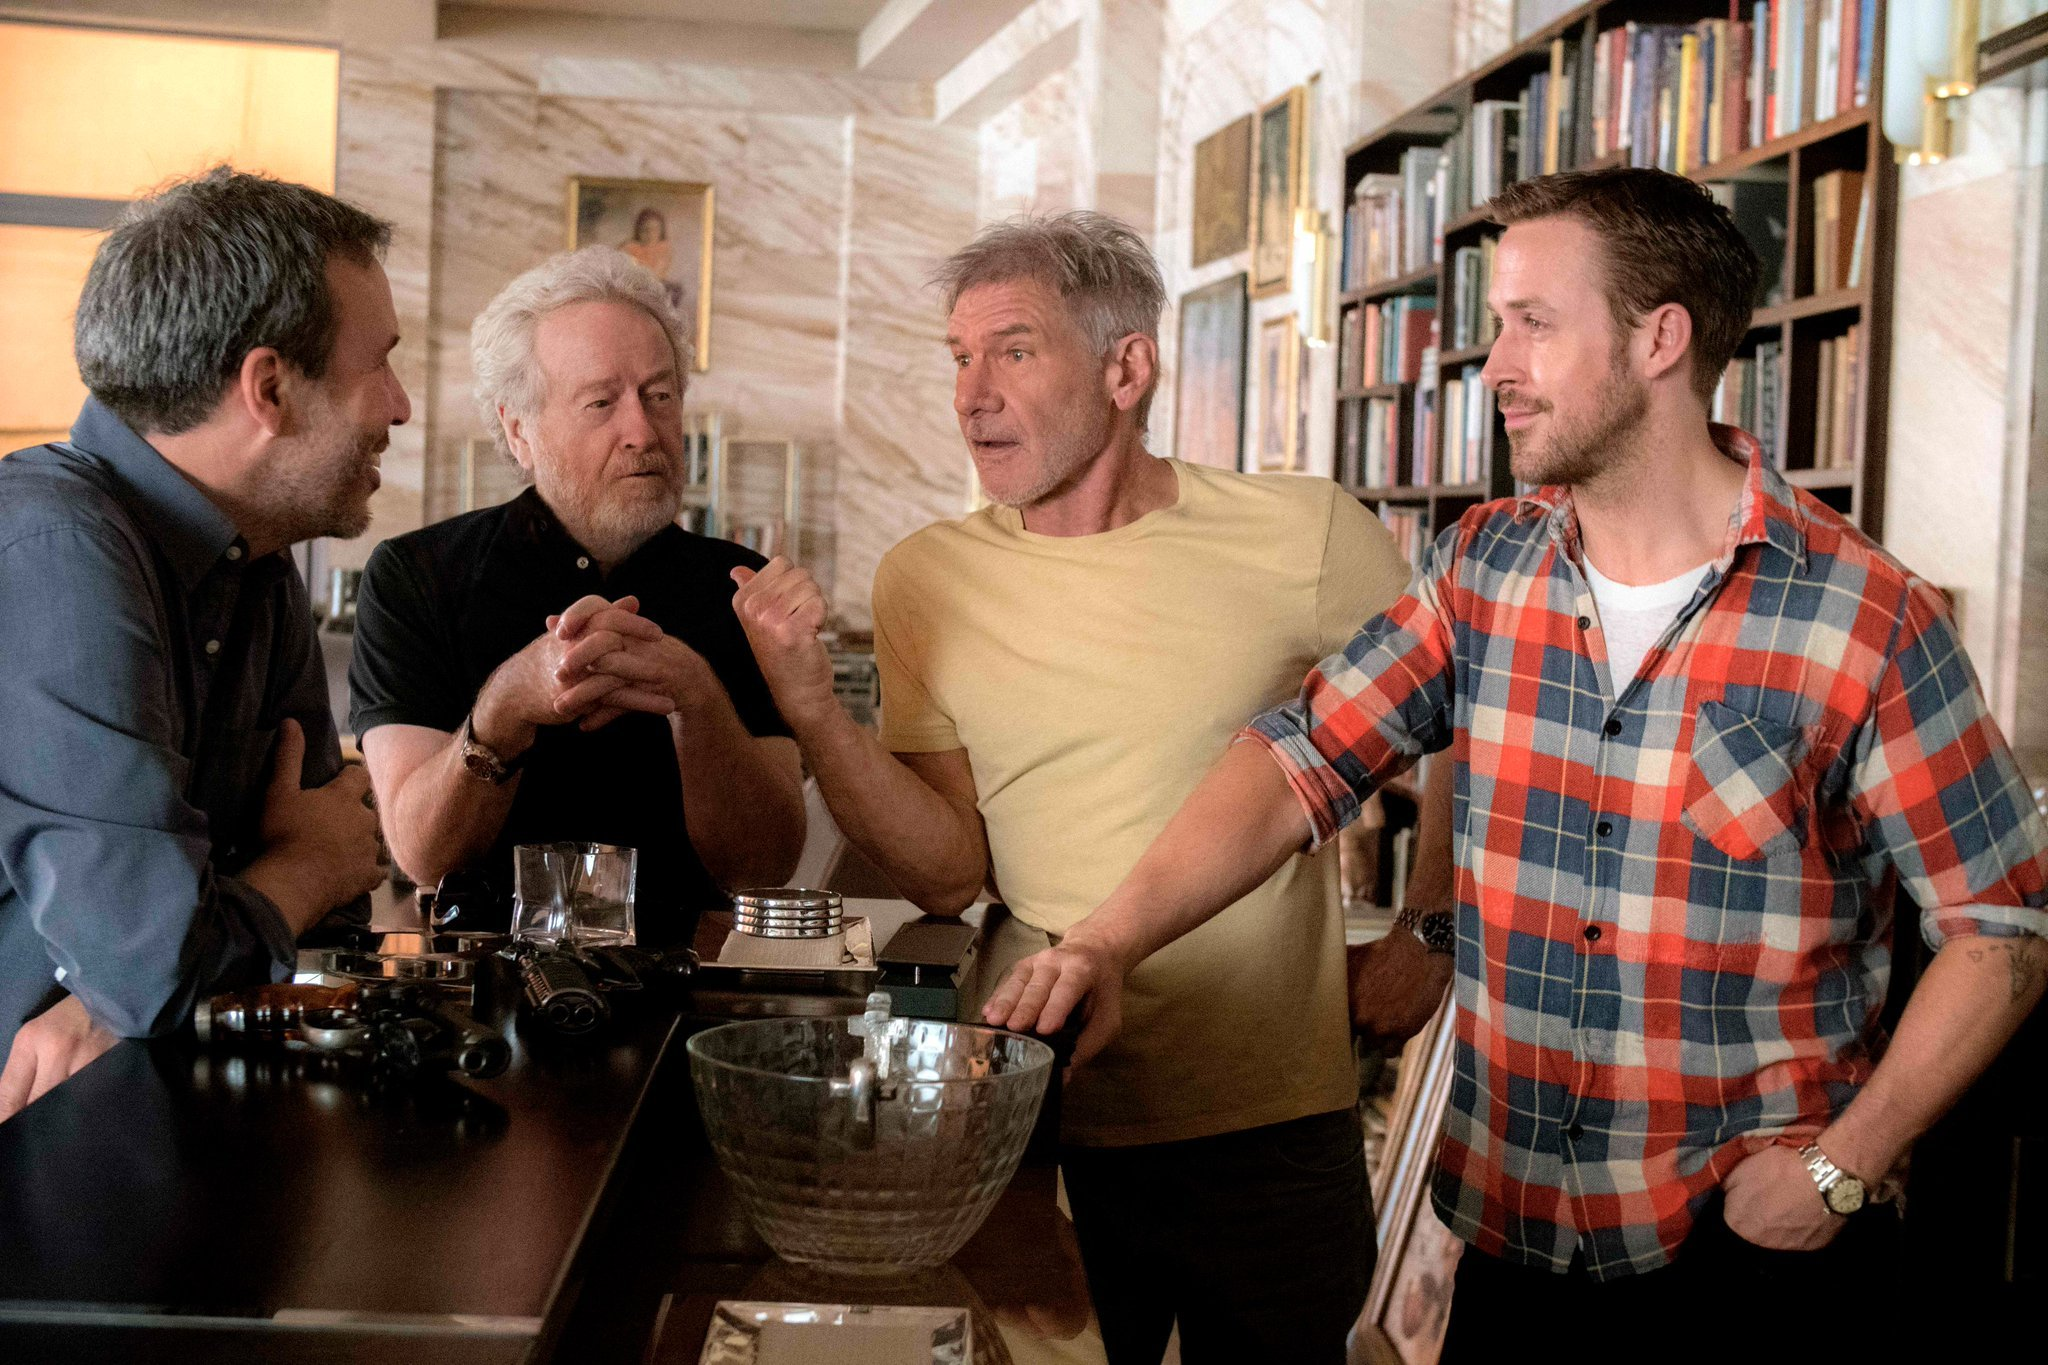 Ryan Gosling reveals what it was like to work with Harrison Ford on Blade Runner 2049